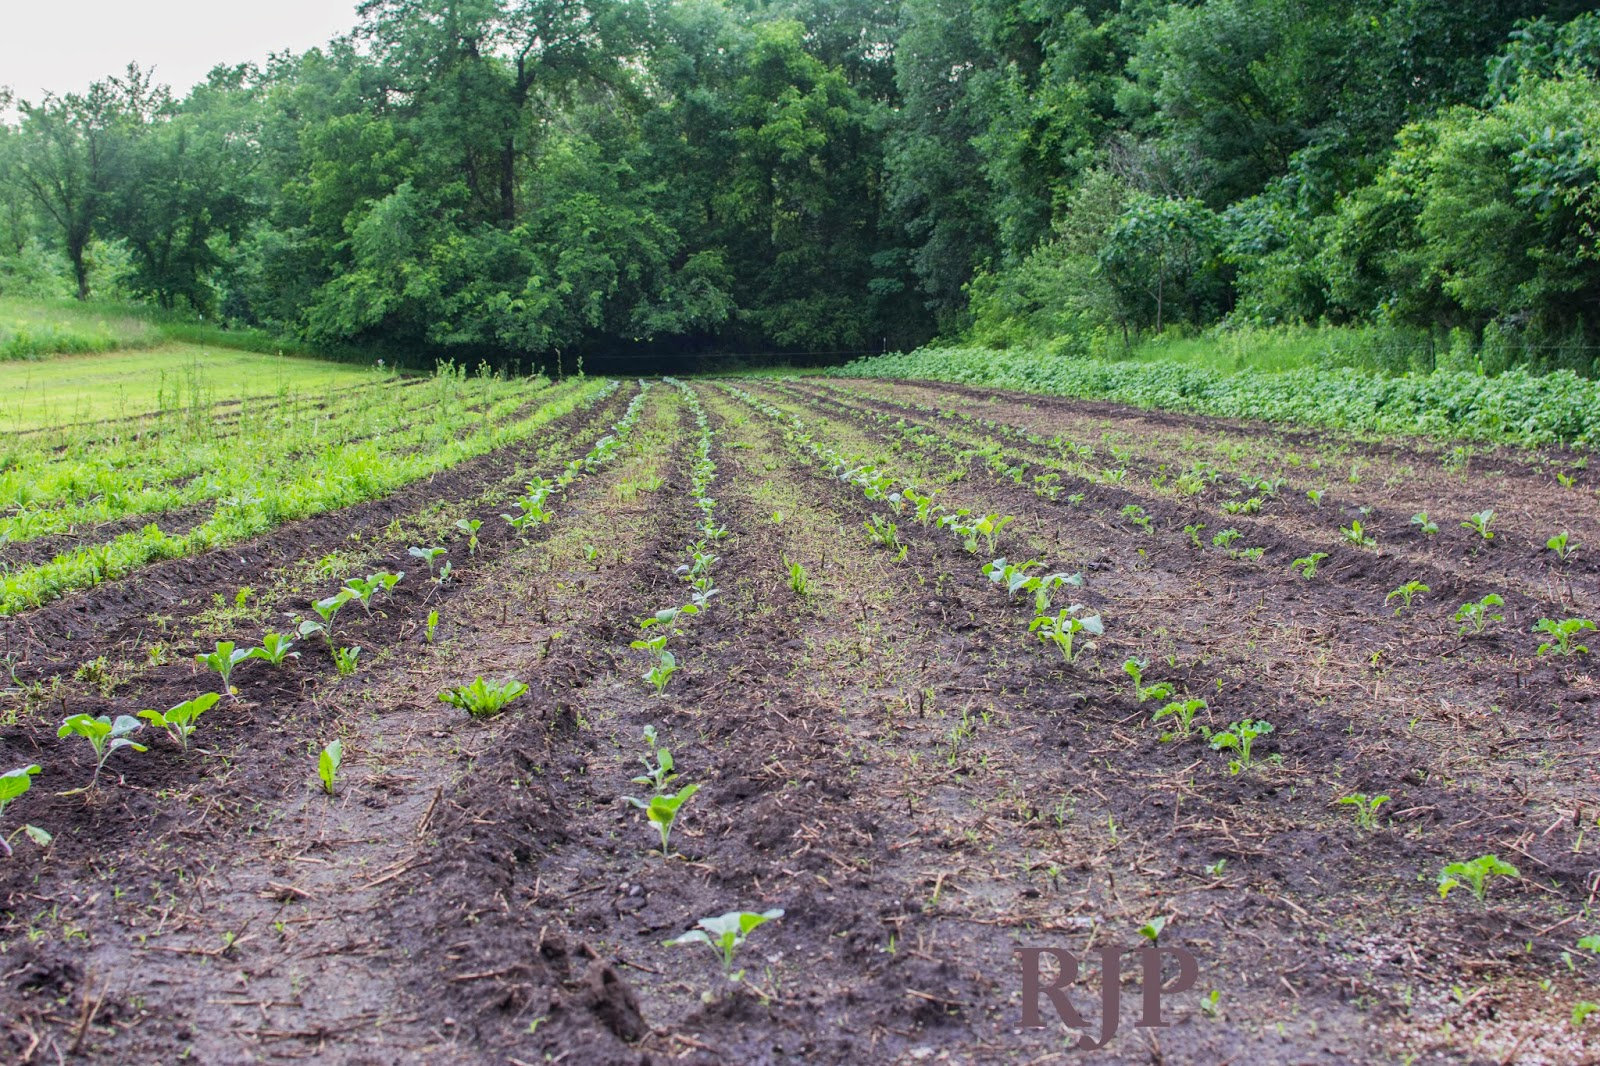 These Are The Plants We're Currently Planting On Our Fully Organic Farm Credit: RJP